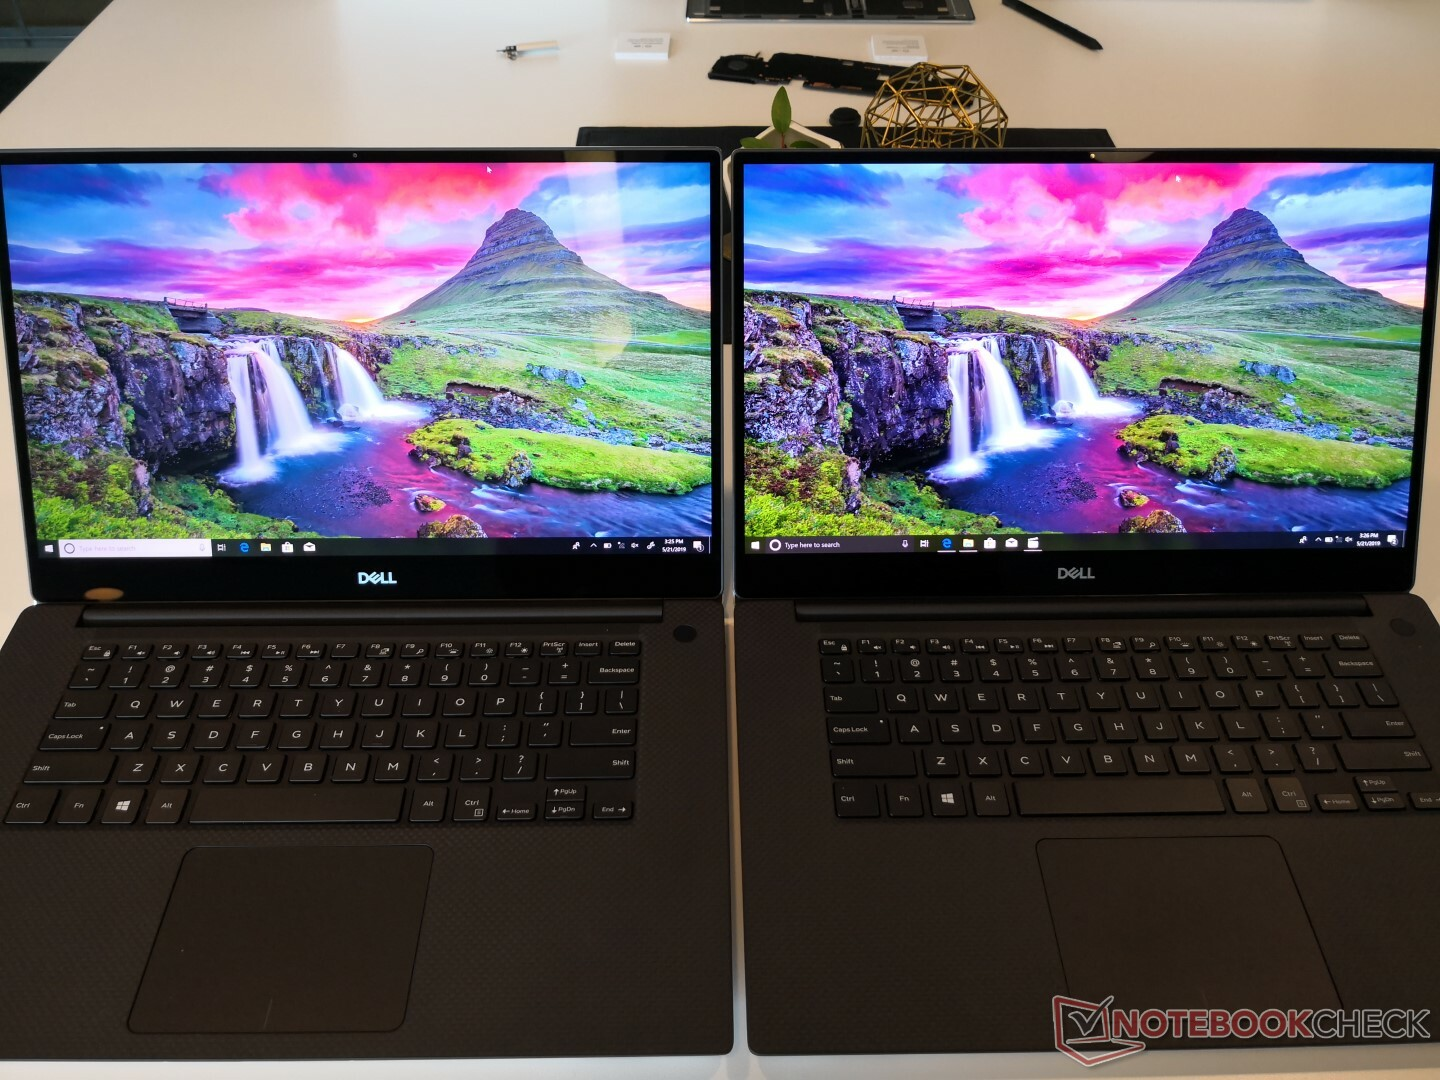 Why is it called the XPS 15 7590 and not the XPS 15 9580